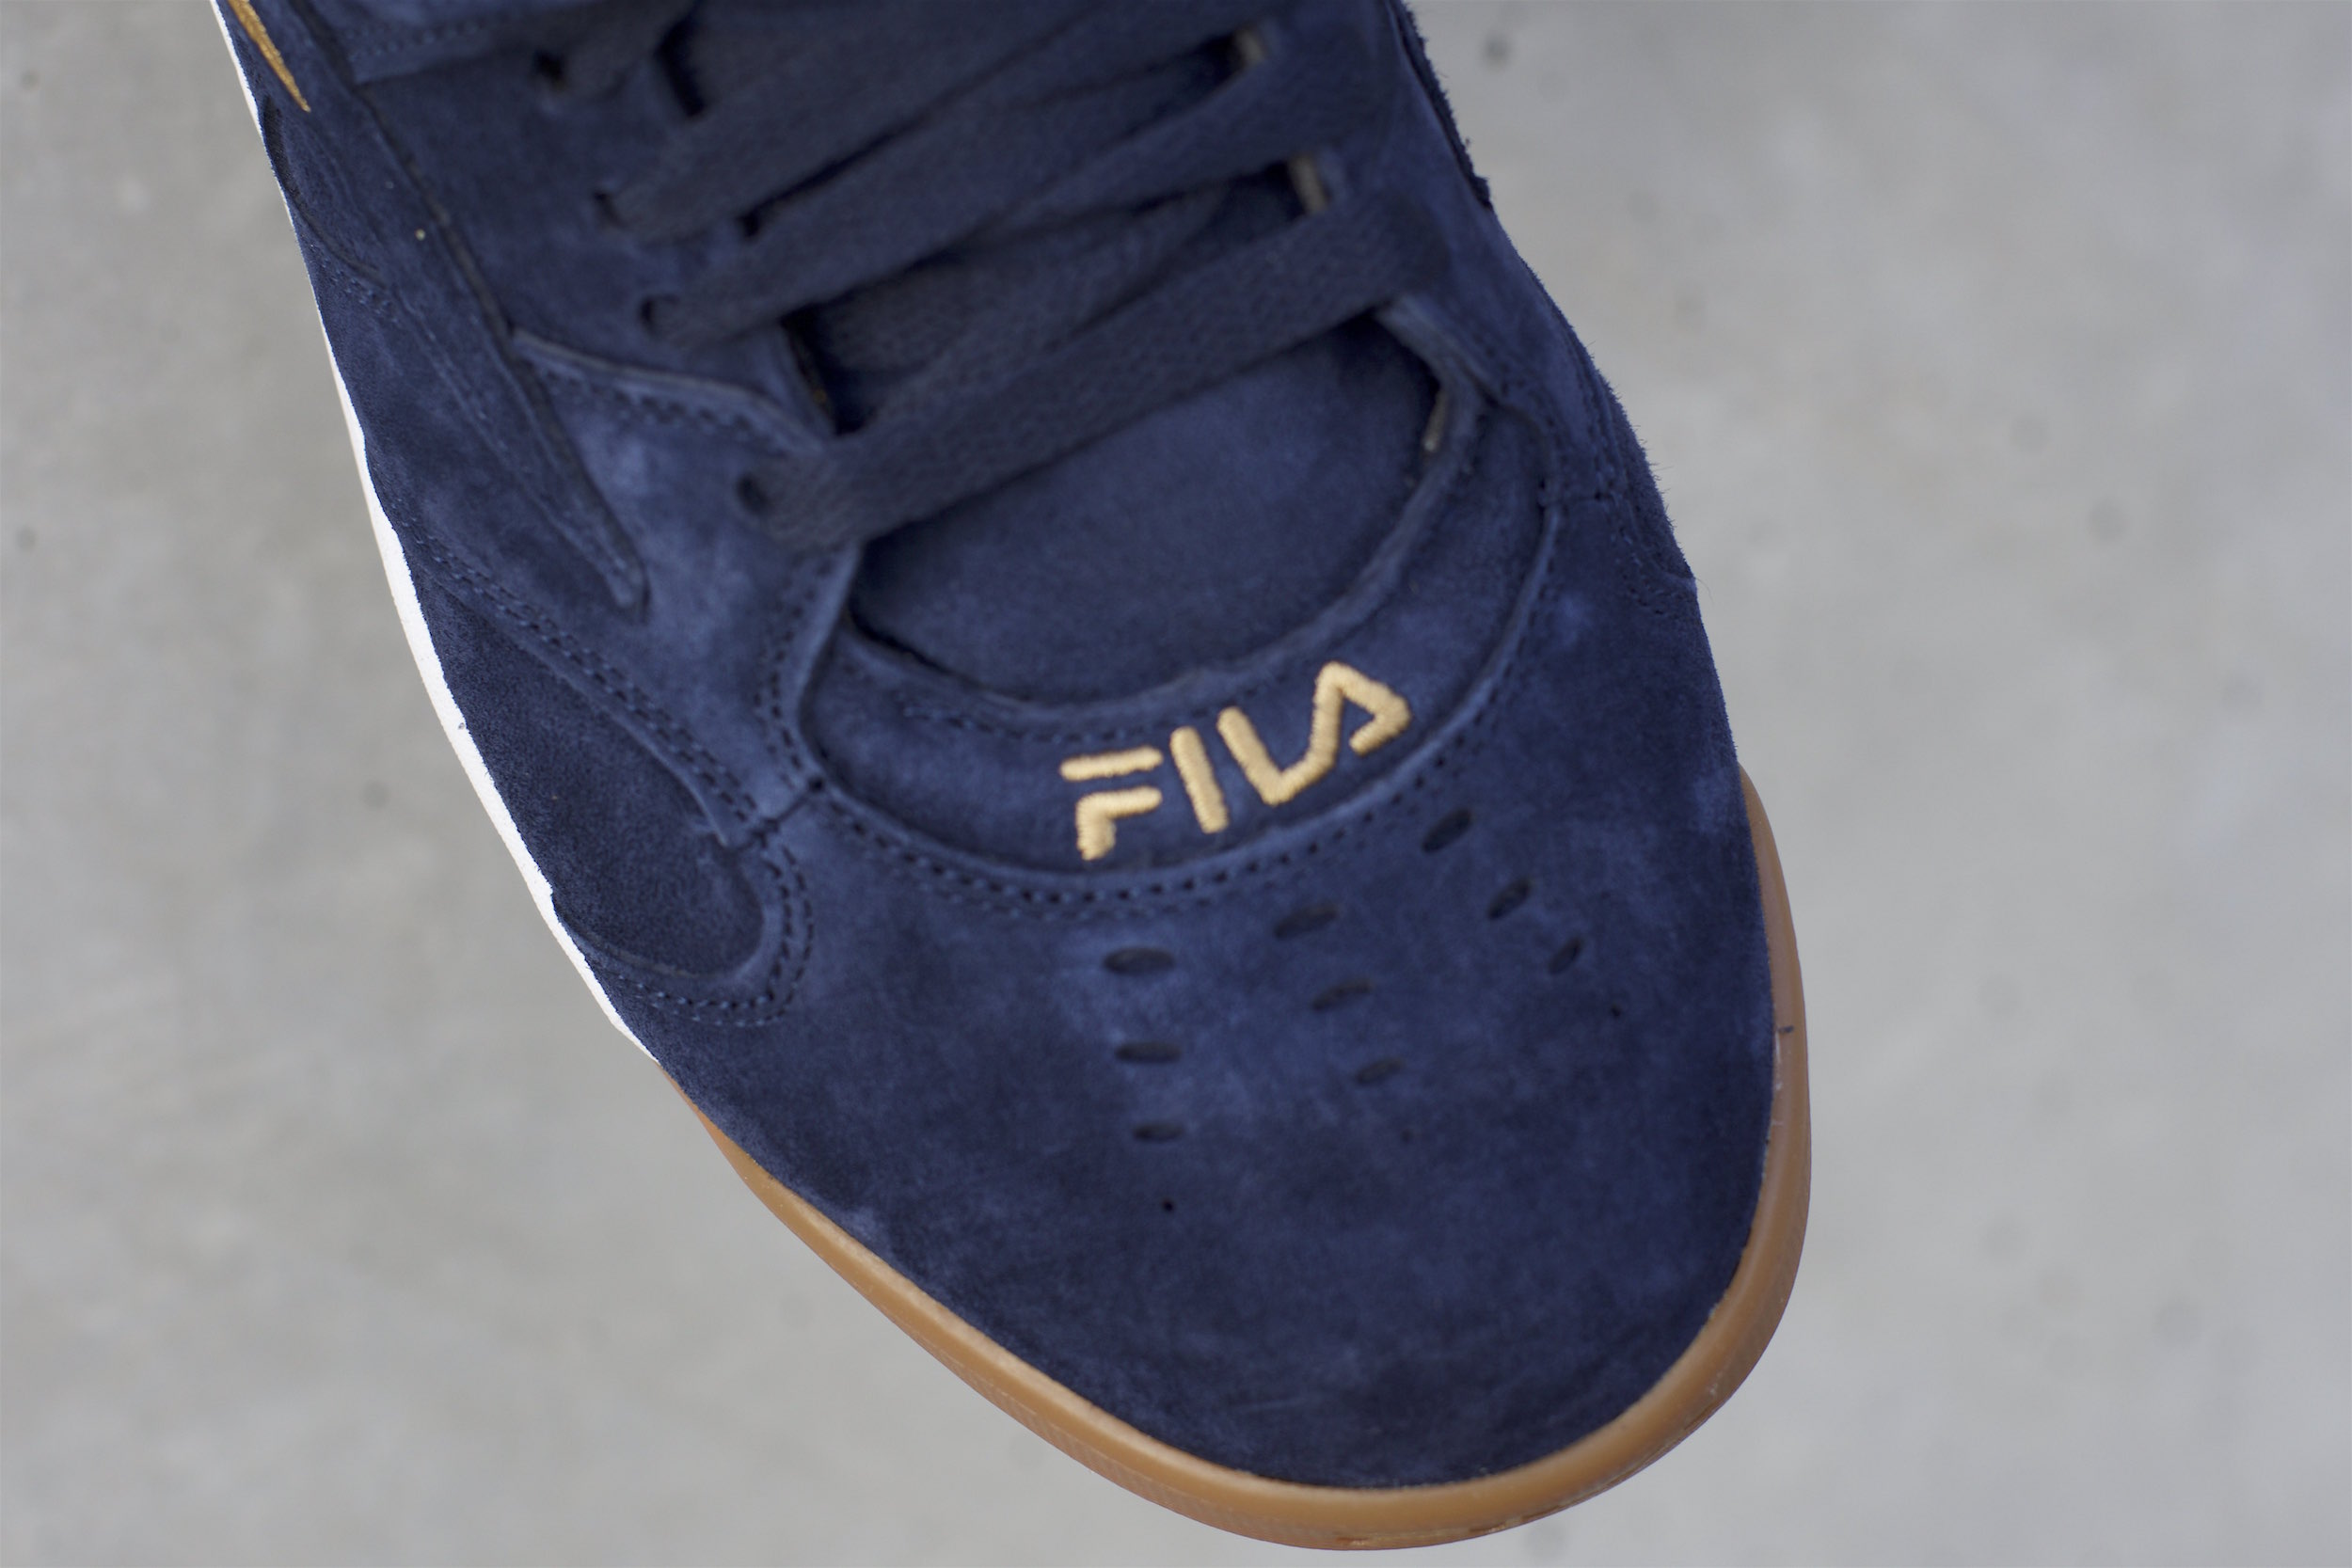 FILA Spoiler Royal Beginnings 6